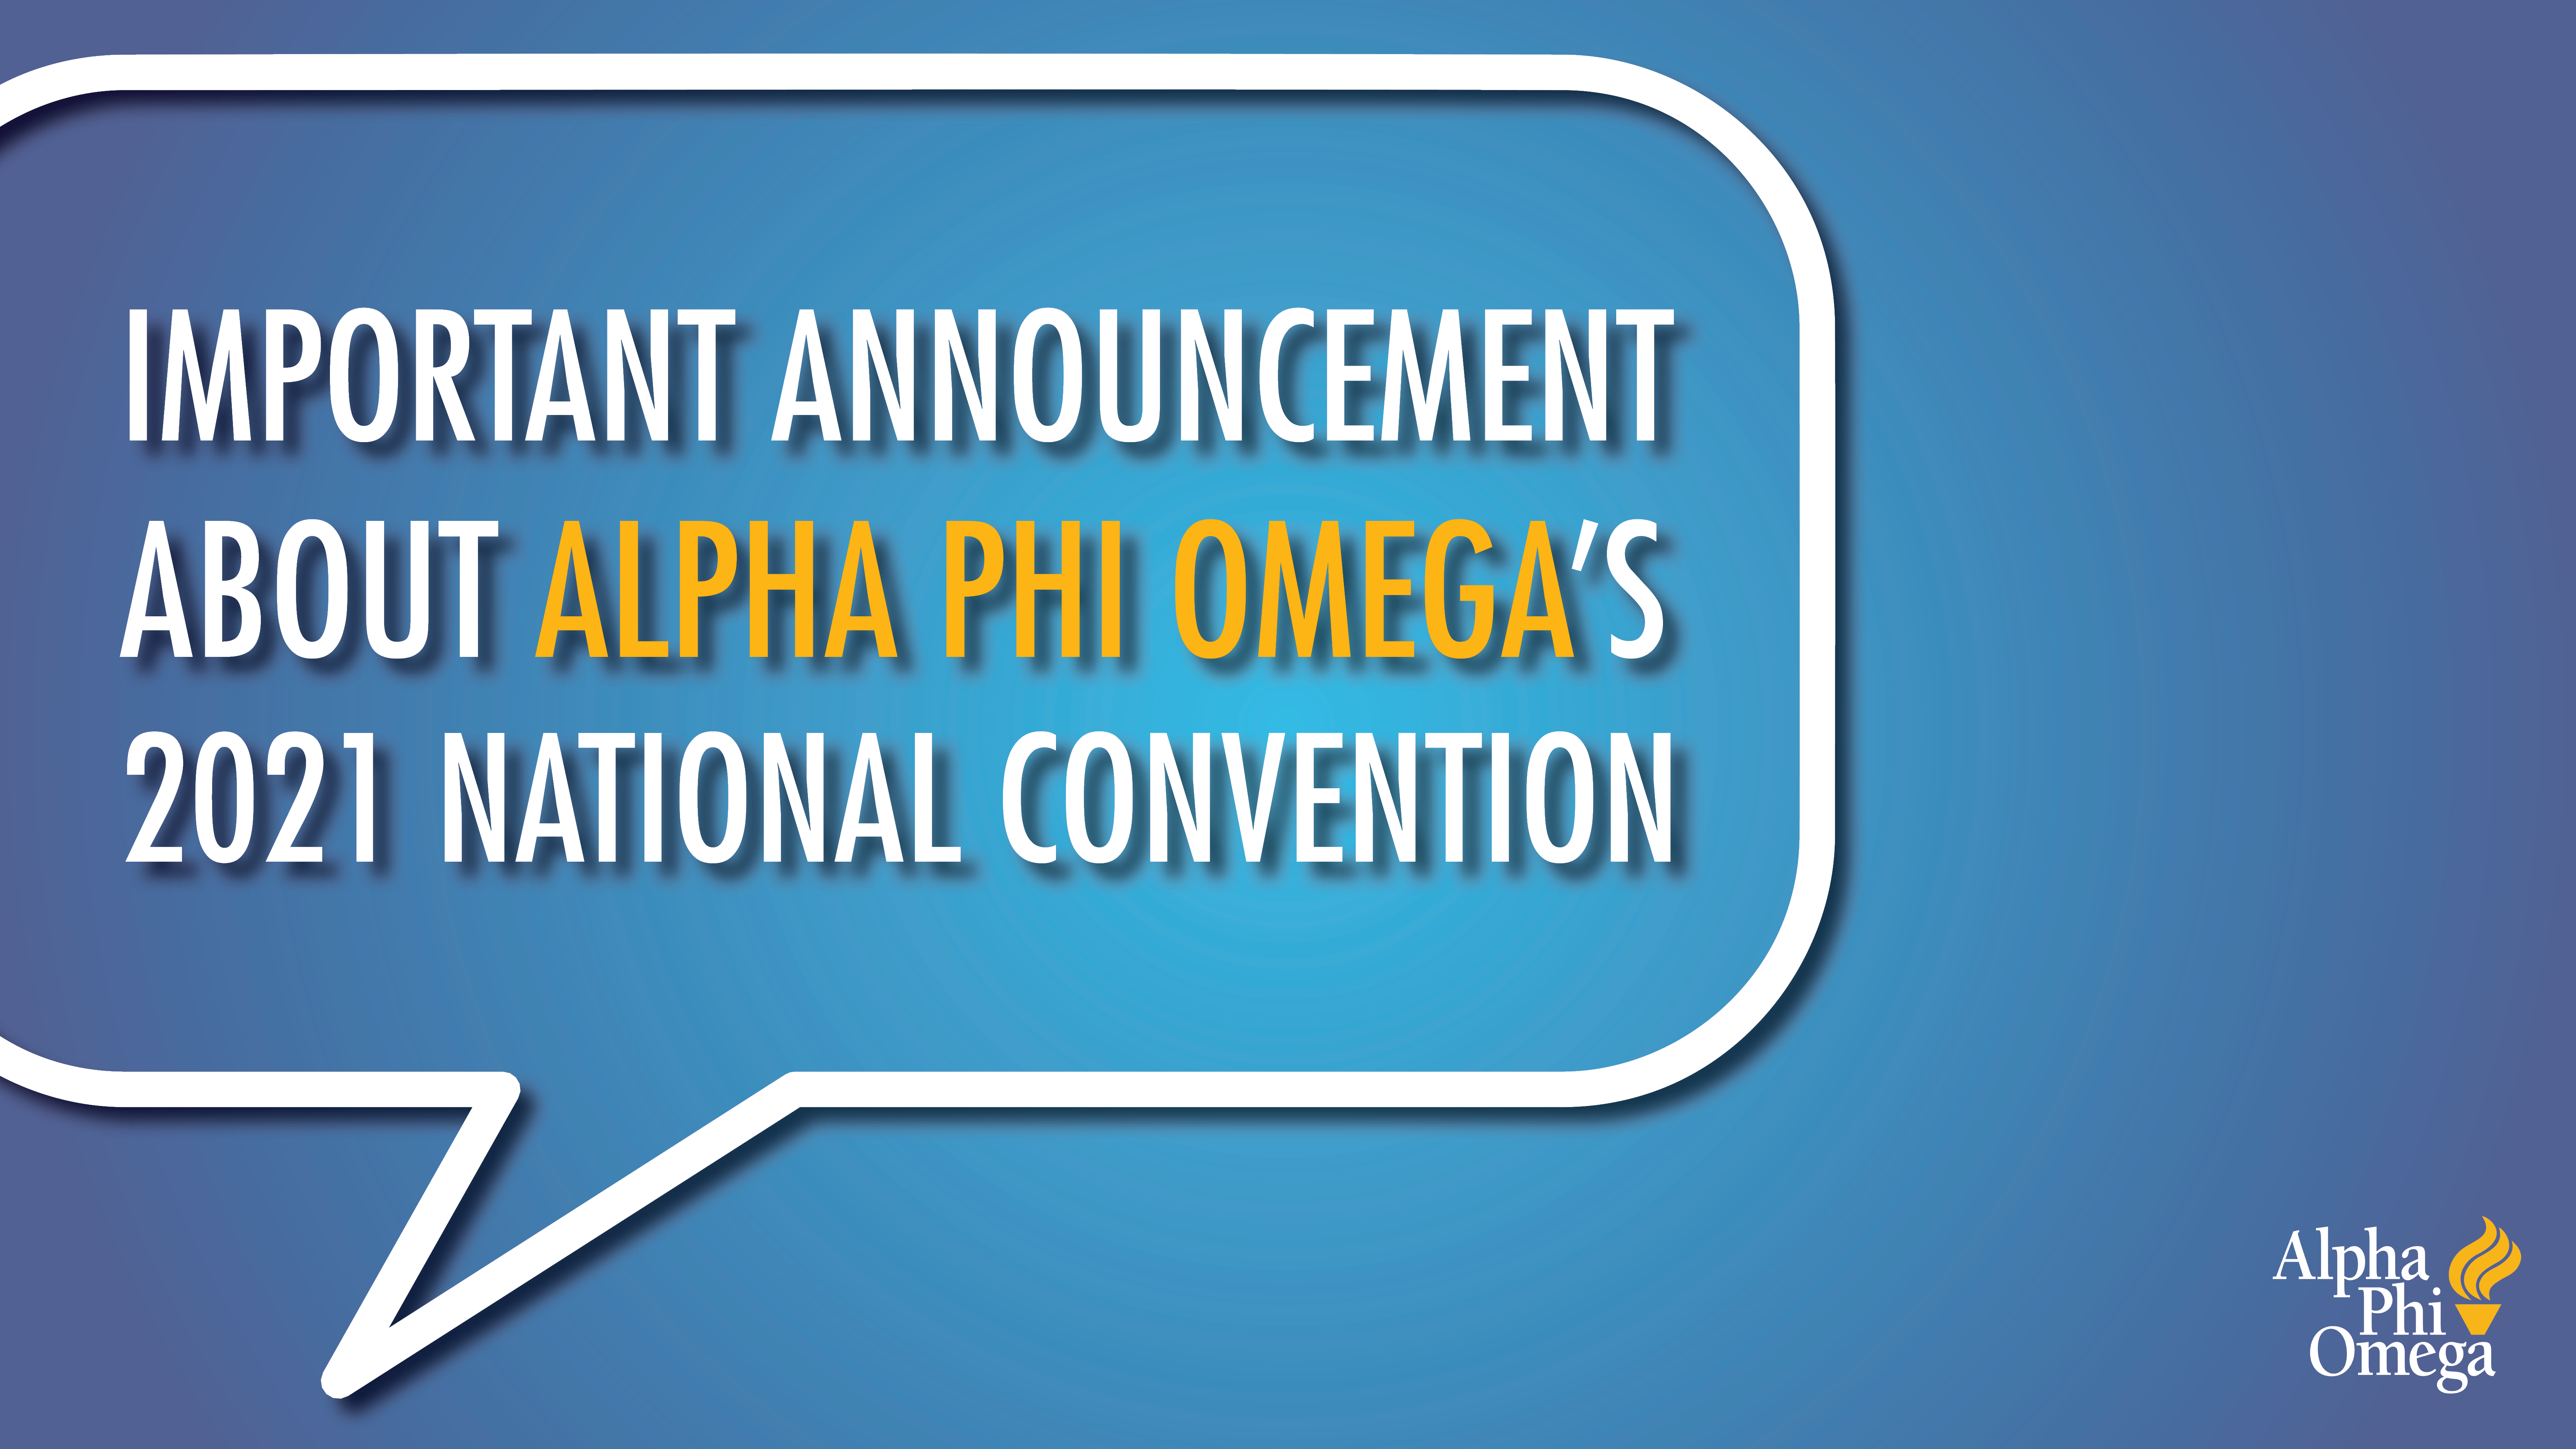 """Blue background with white outline of speech bubble on left side of screen. Text inside speech bubble reads, """"Important Announcement about Alpha Phi Omega's 2021 National Convention."""""""